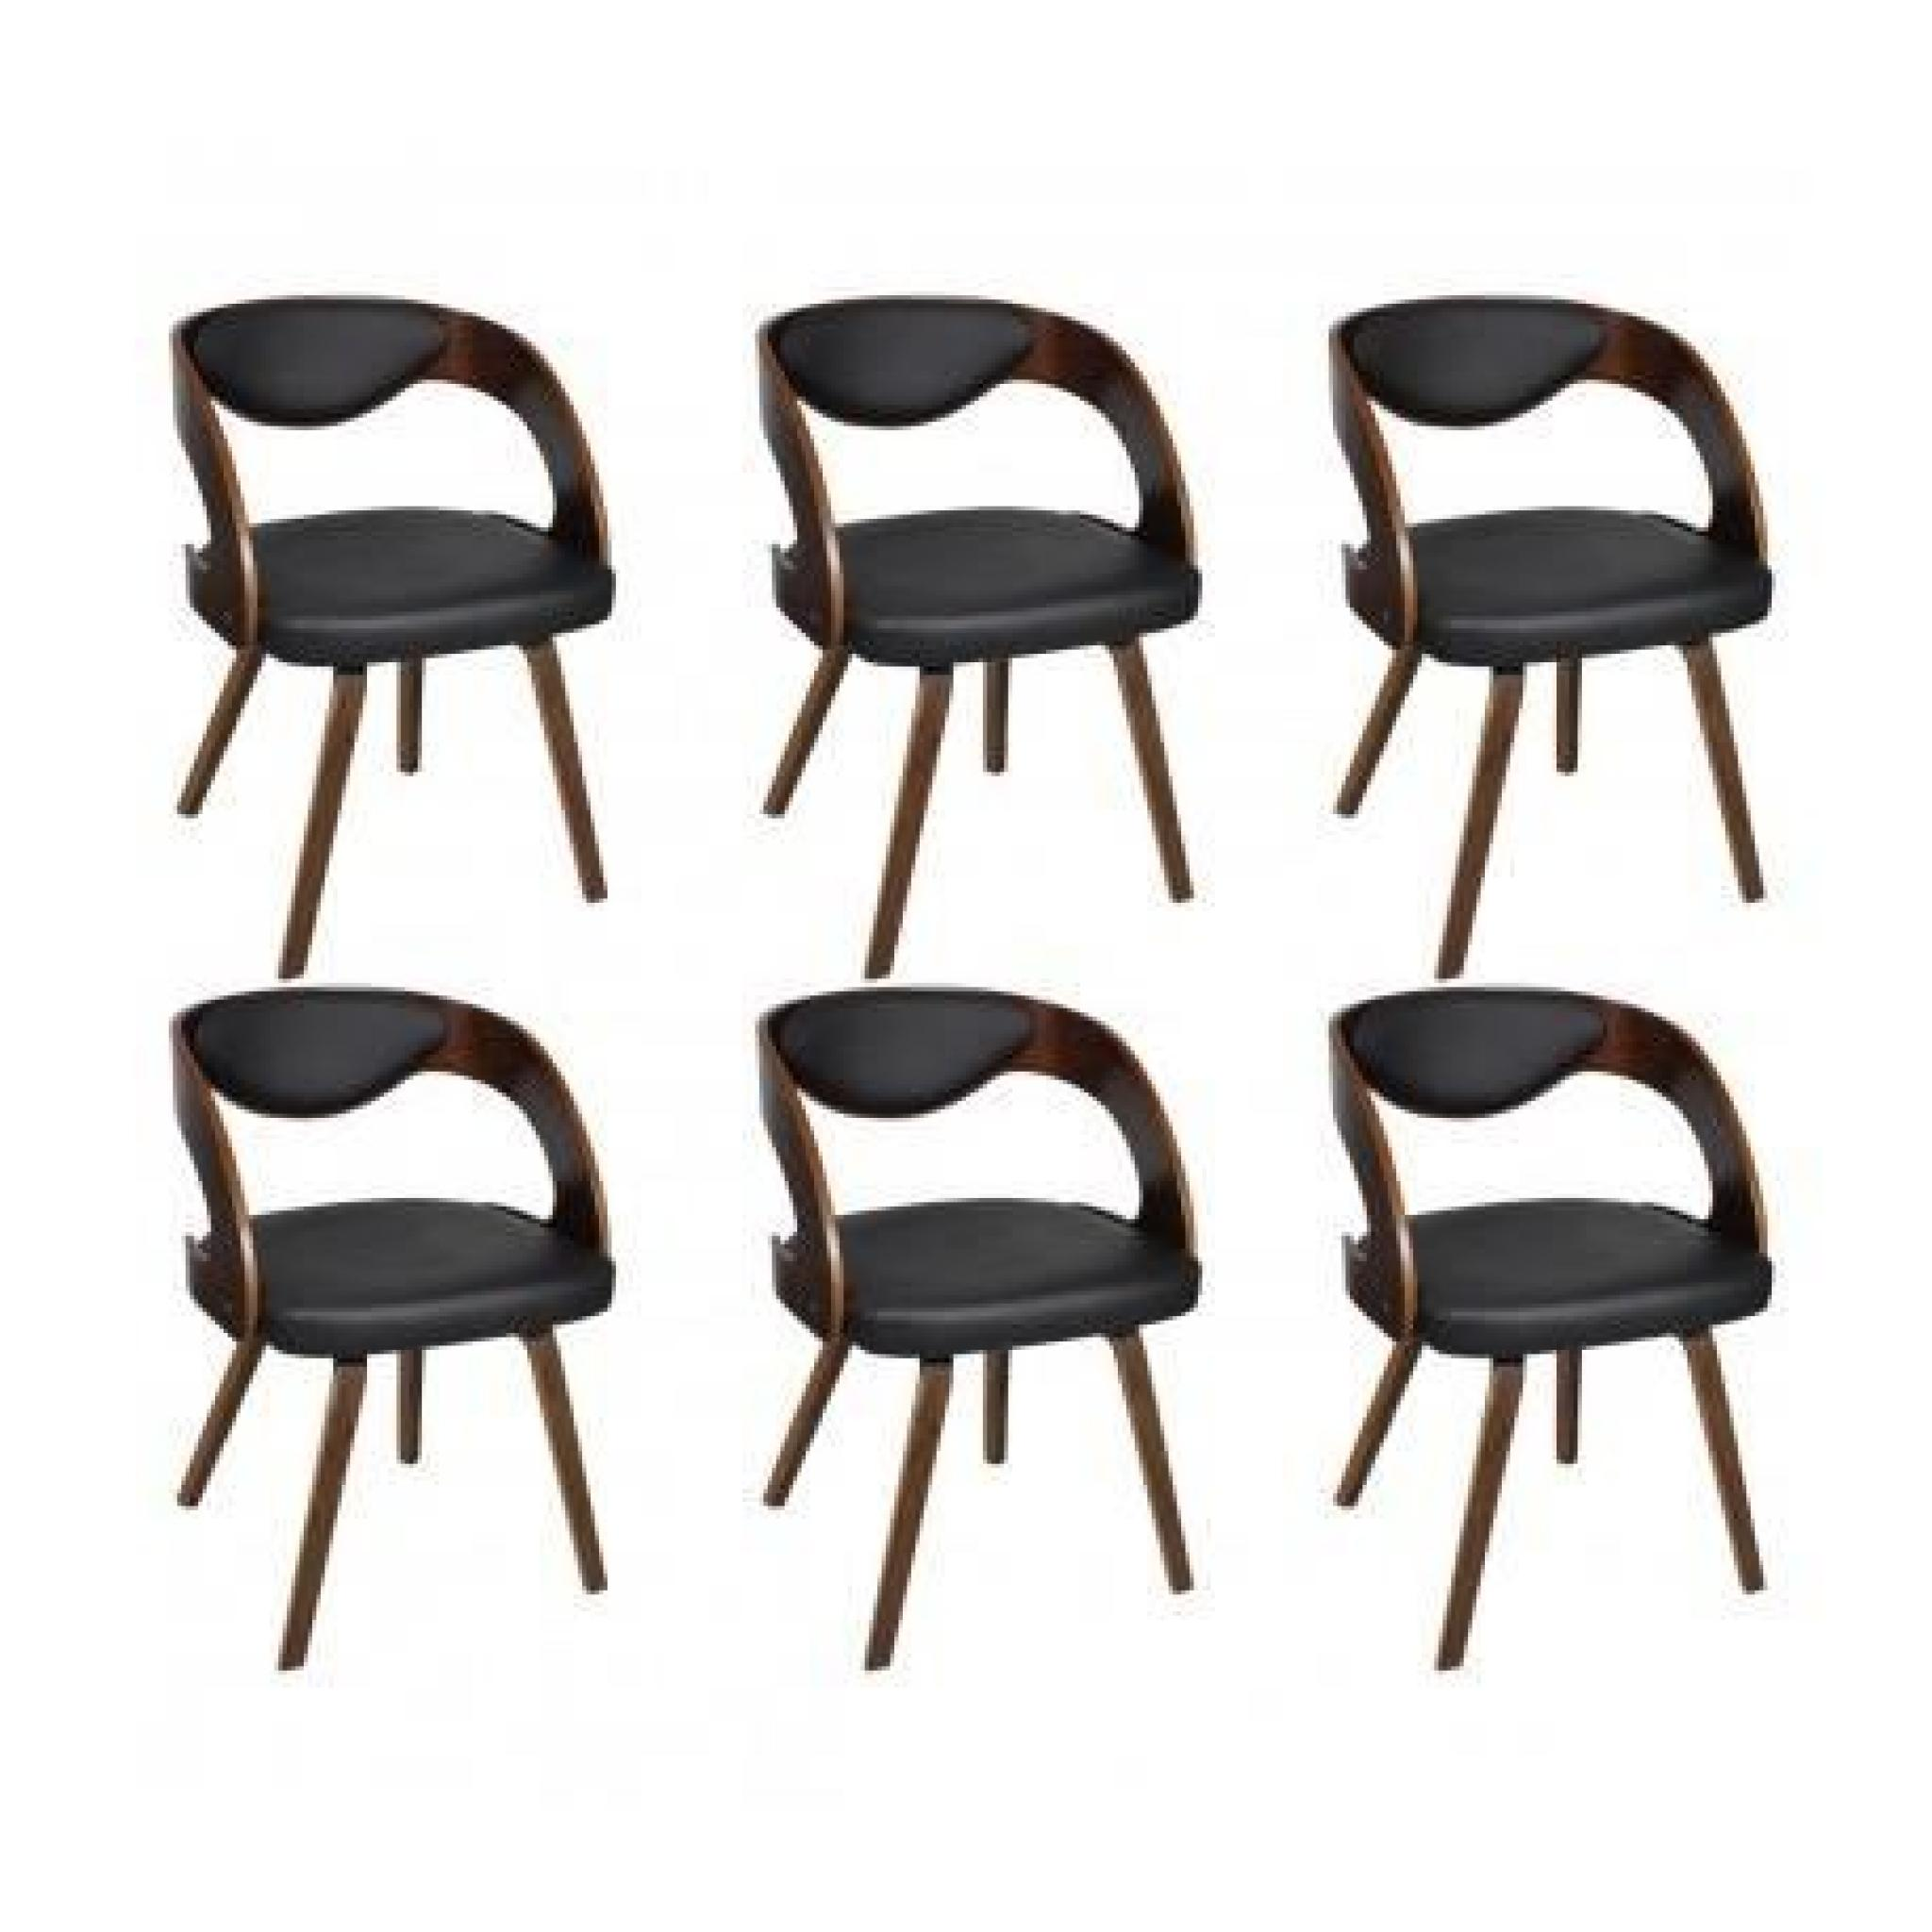 chaises design de salon salle manger marron x2 maja. Black Bedroom Furniture Sets. Home Design Ideas